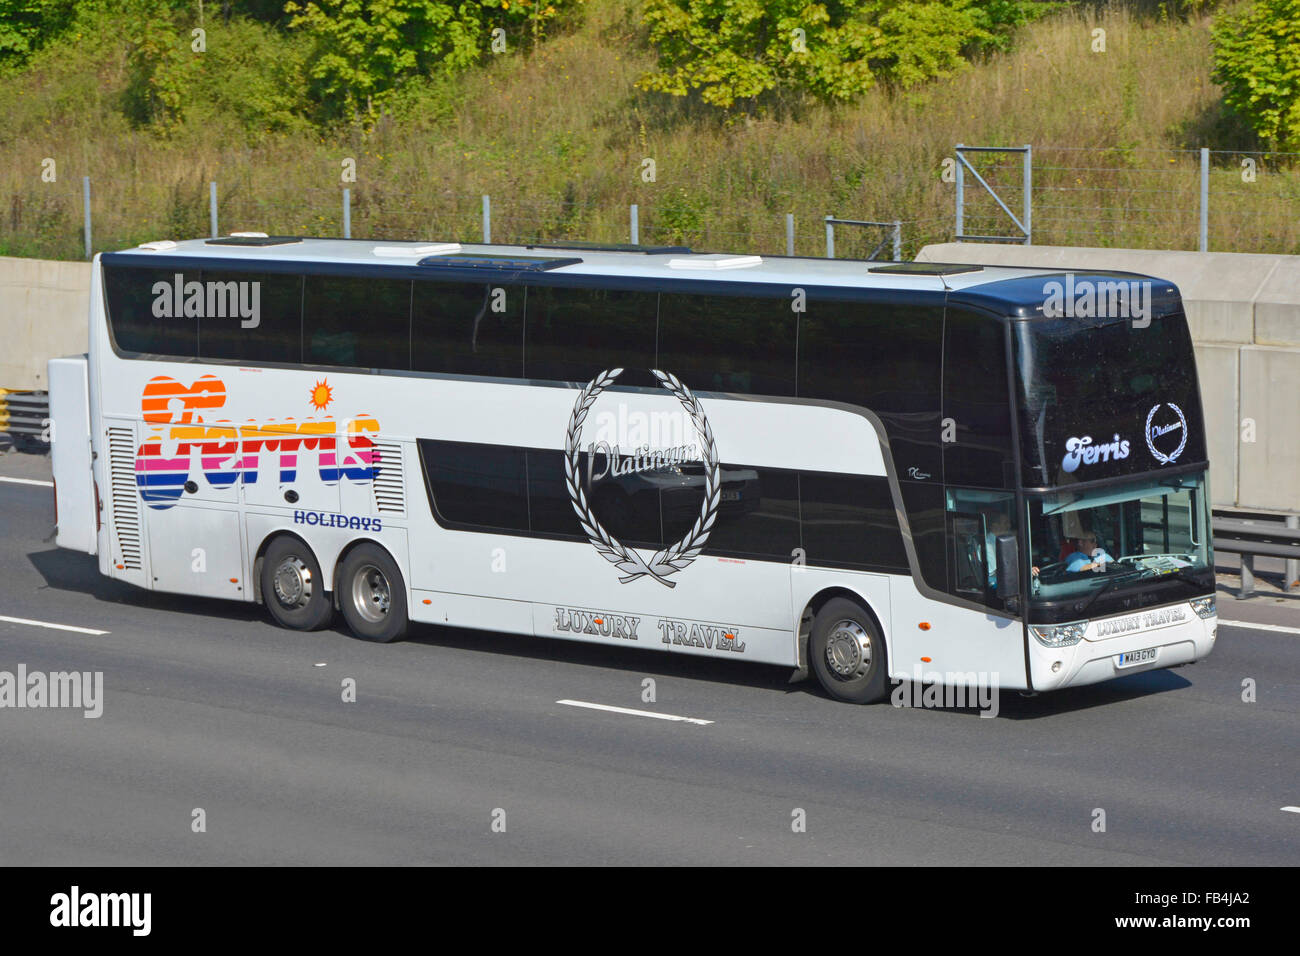 Ferris Holidays Luxury Travel double decker coach driving along motorway - Stock Image